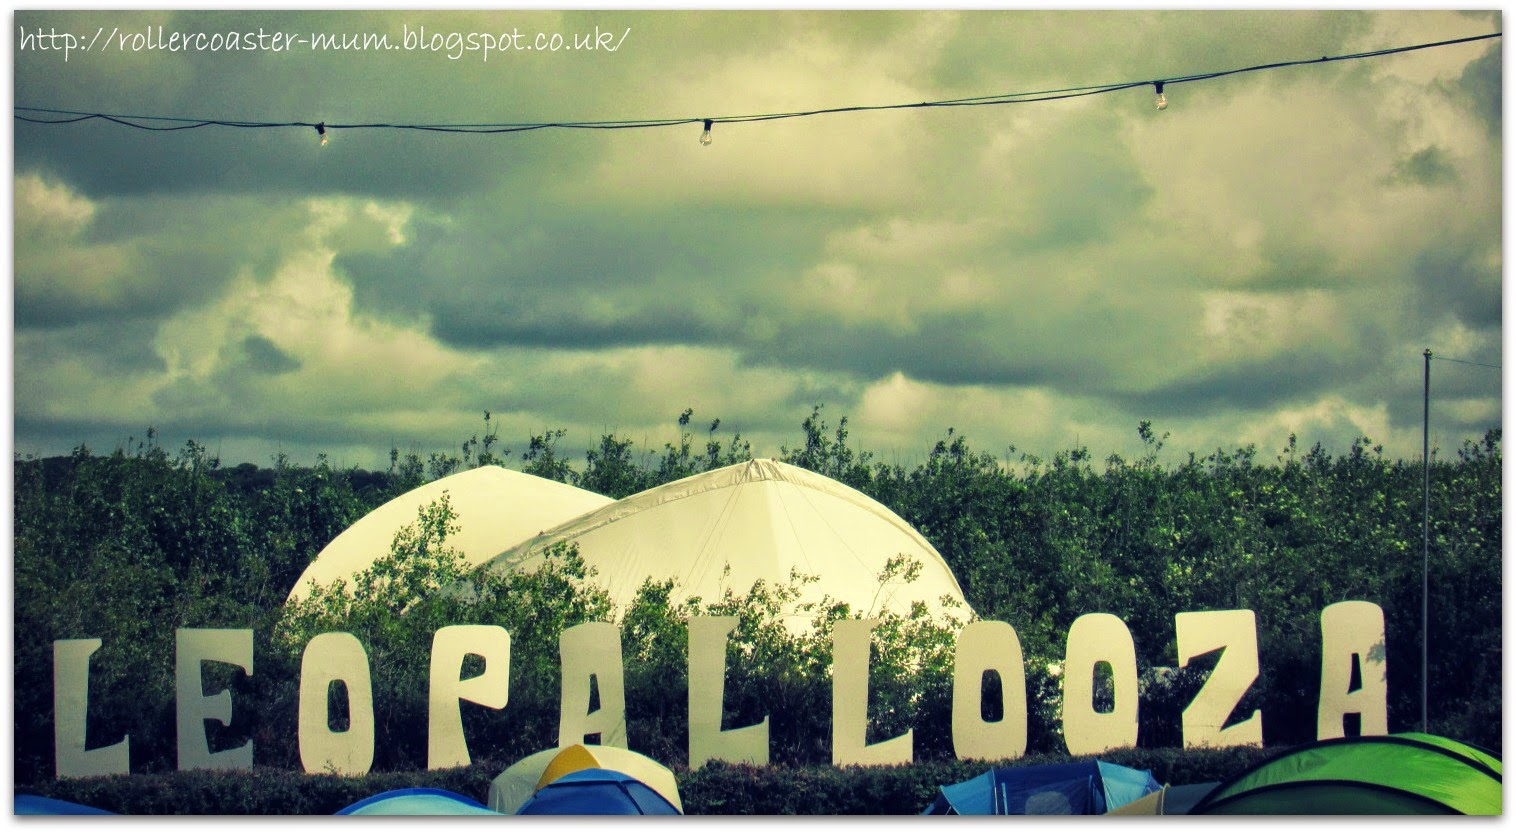 Leopallooza - The Greatest House Party in a Field